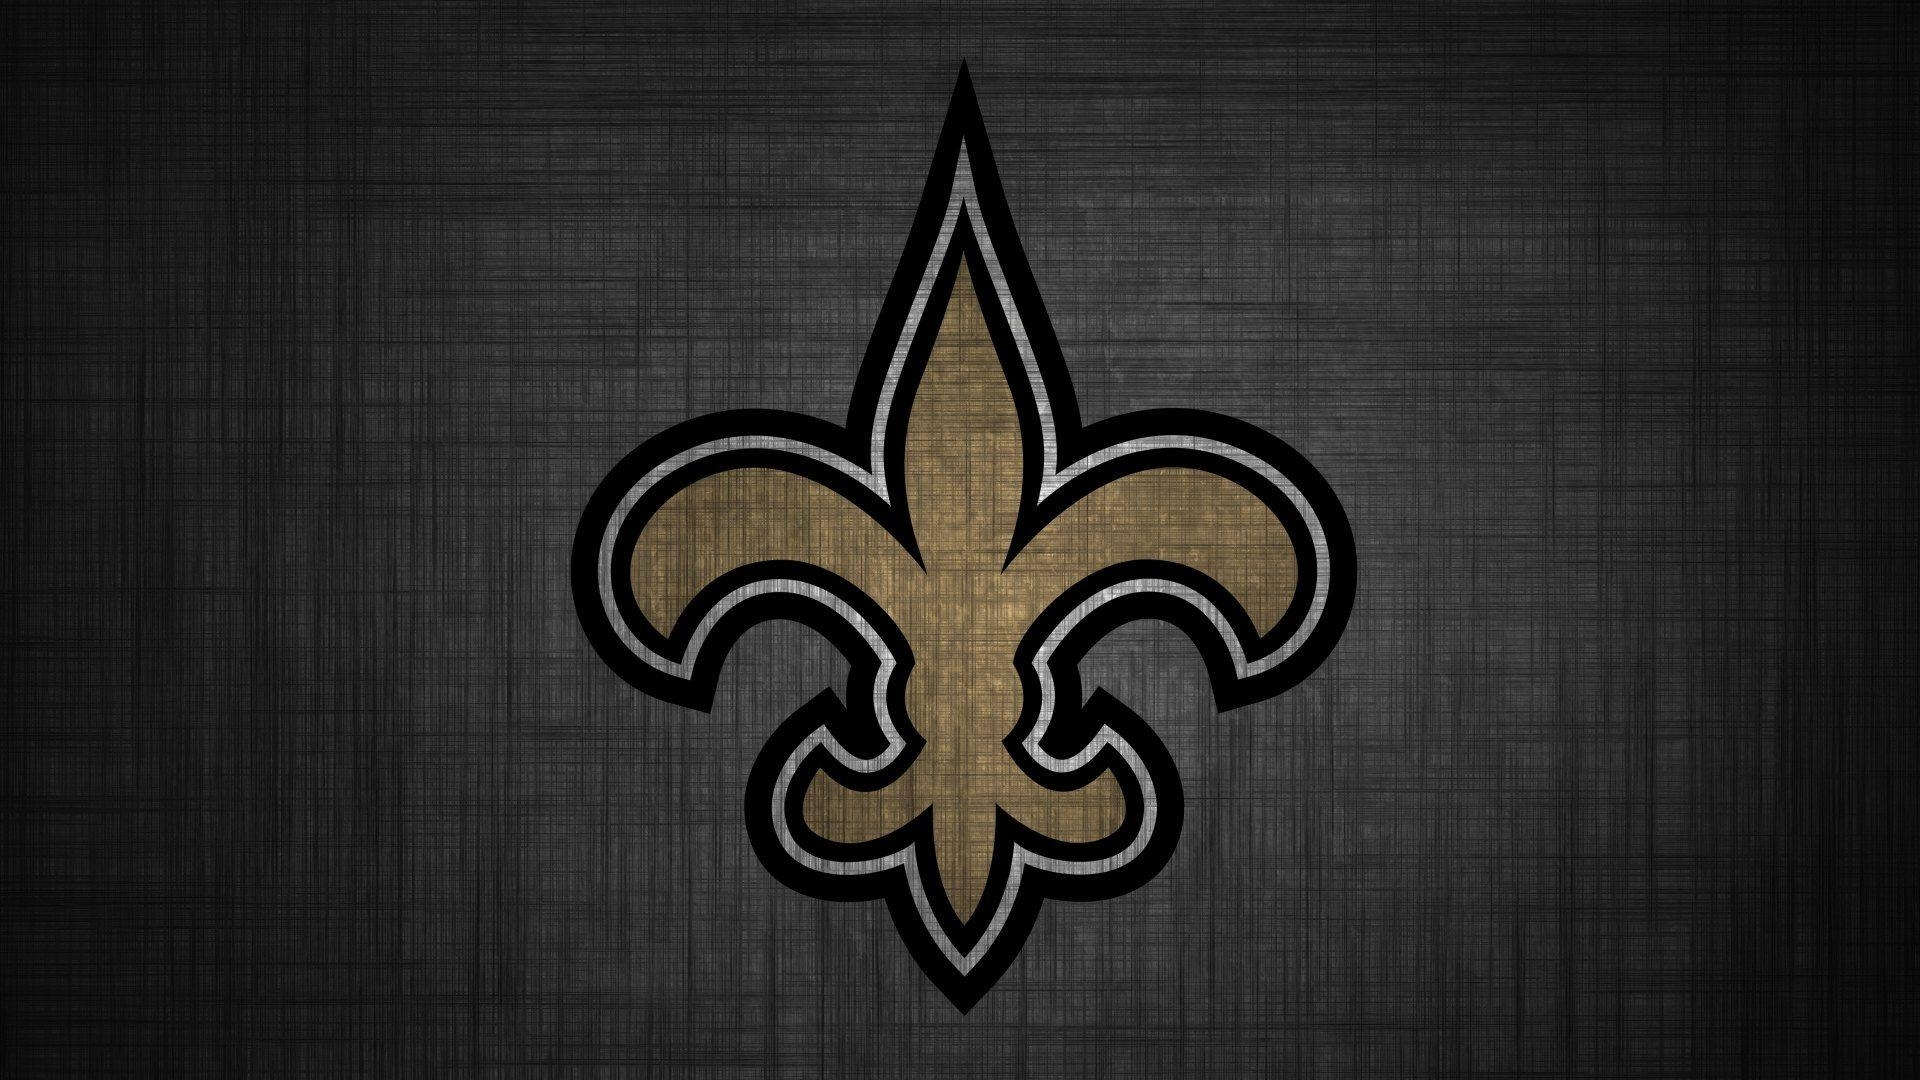 new orleans saints 2016 wallpapers - wallpaper cave